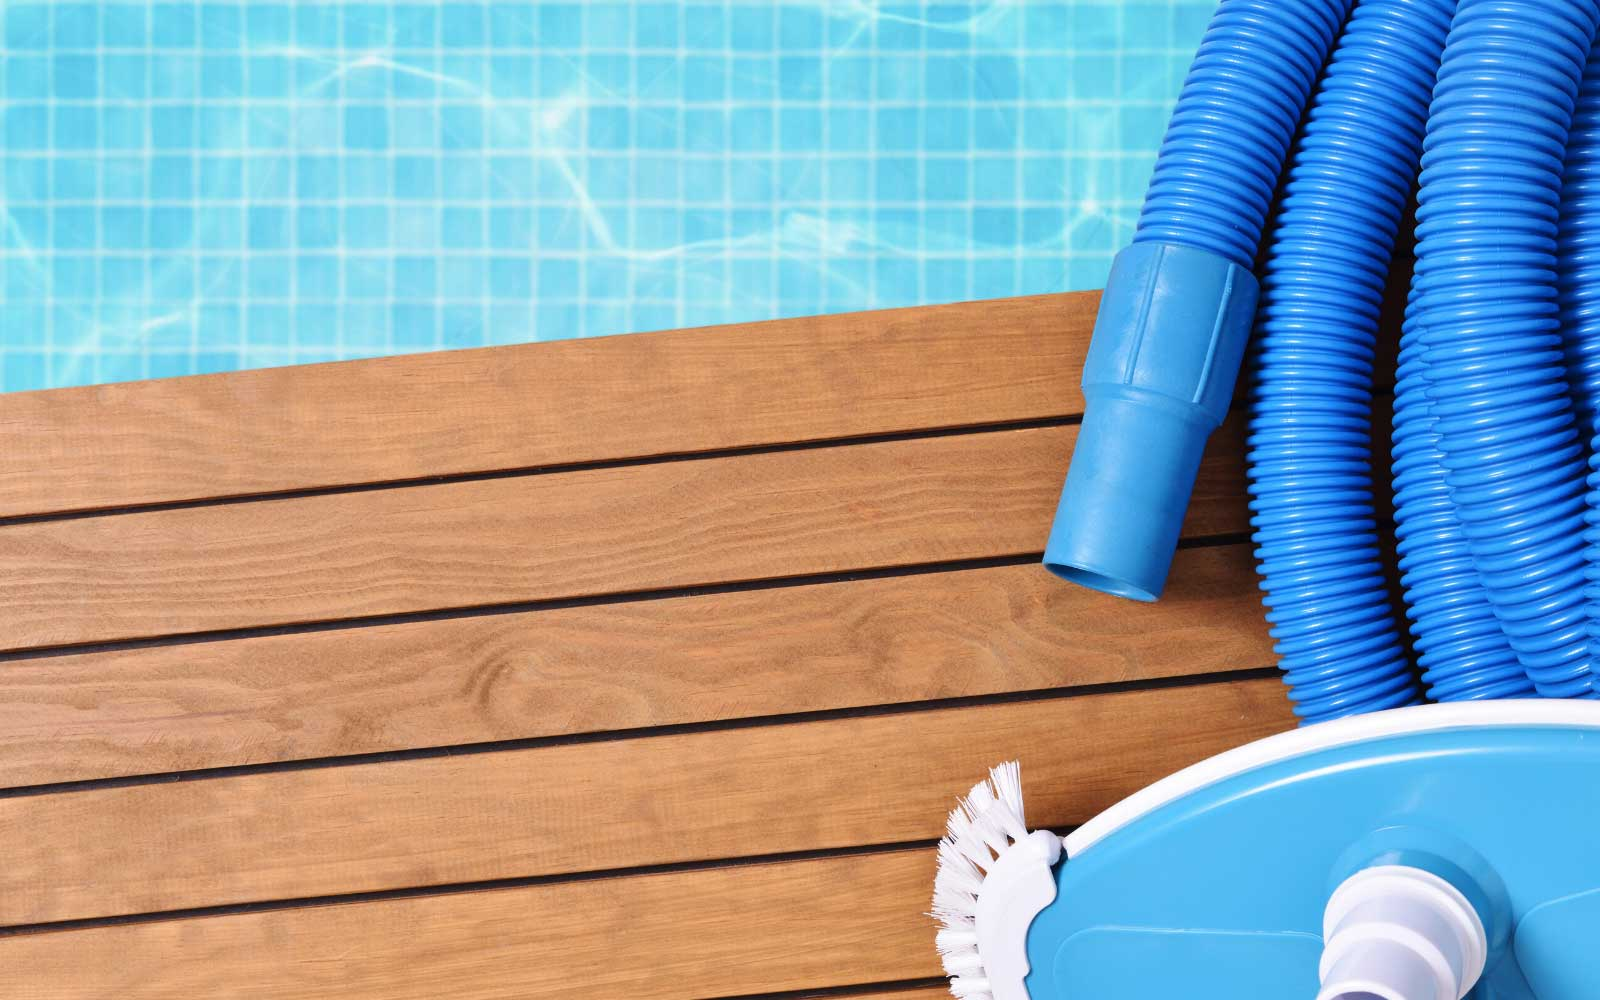 Tools for cleaning pools